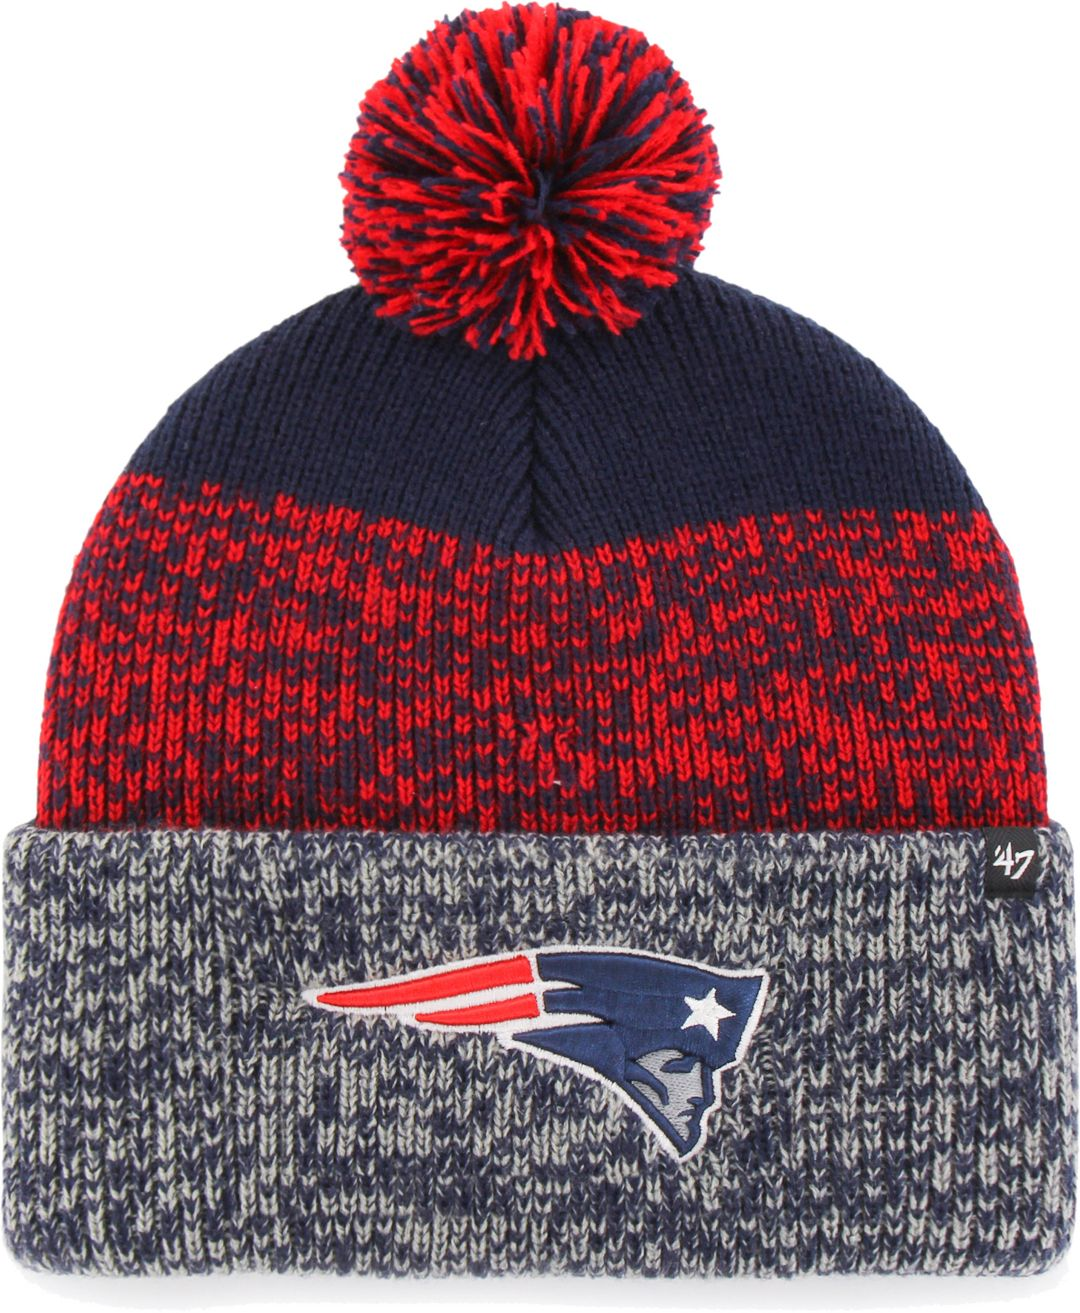 964d9394 47 Men's New England Patriots Static Cuffed Knit   DICK'S Sporting Goods